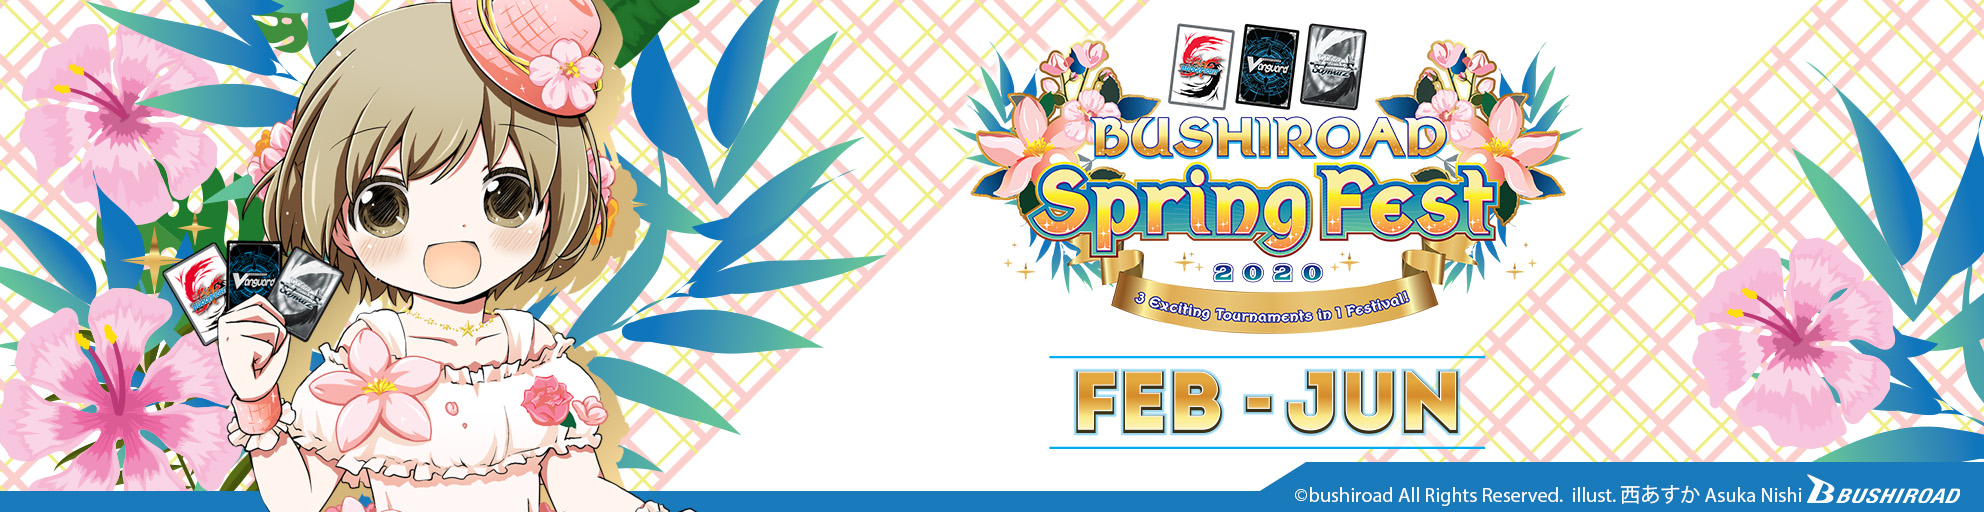 Bushiroad Spring Fest 2020 BSF2020